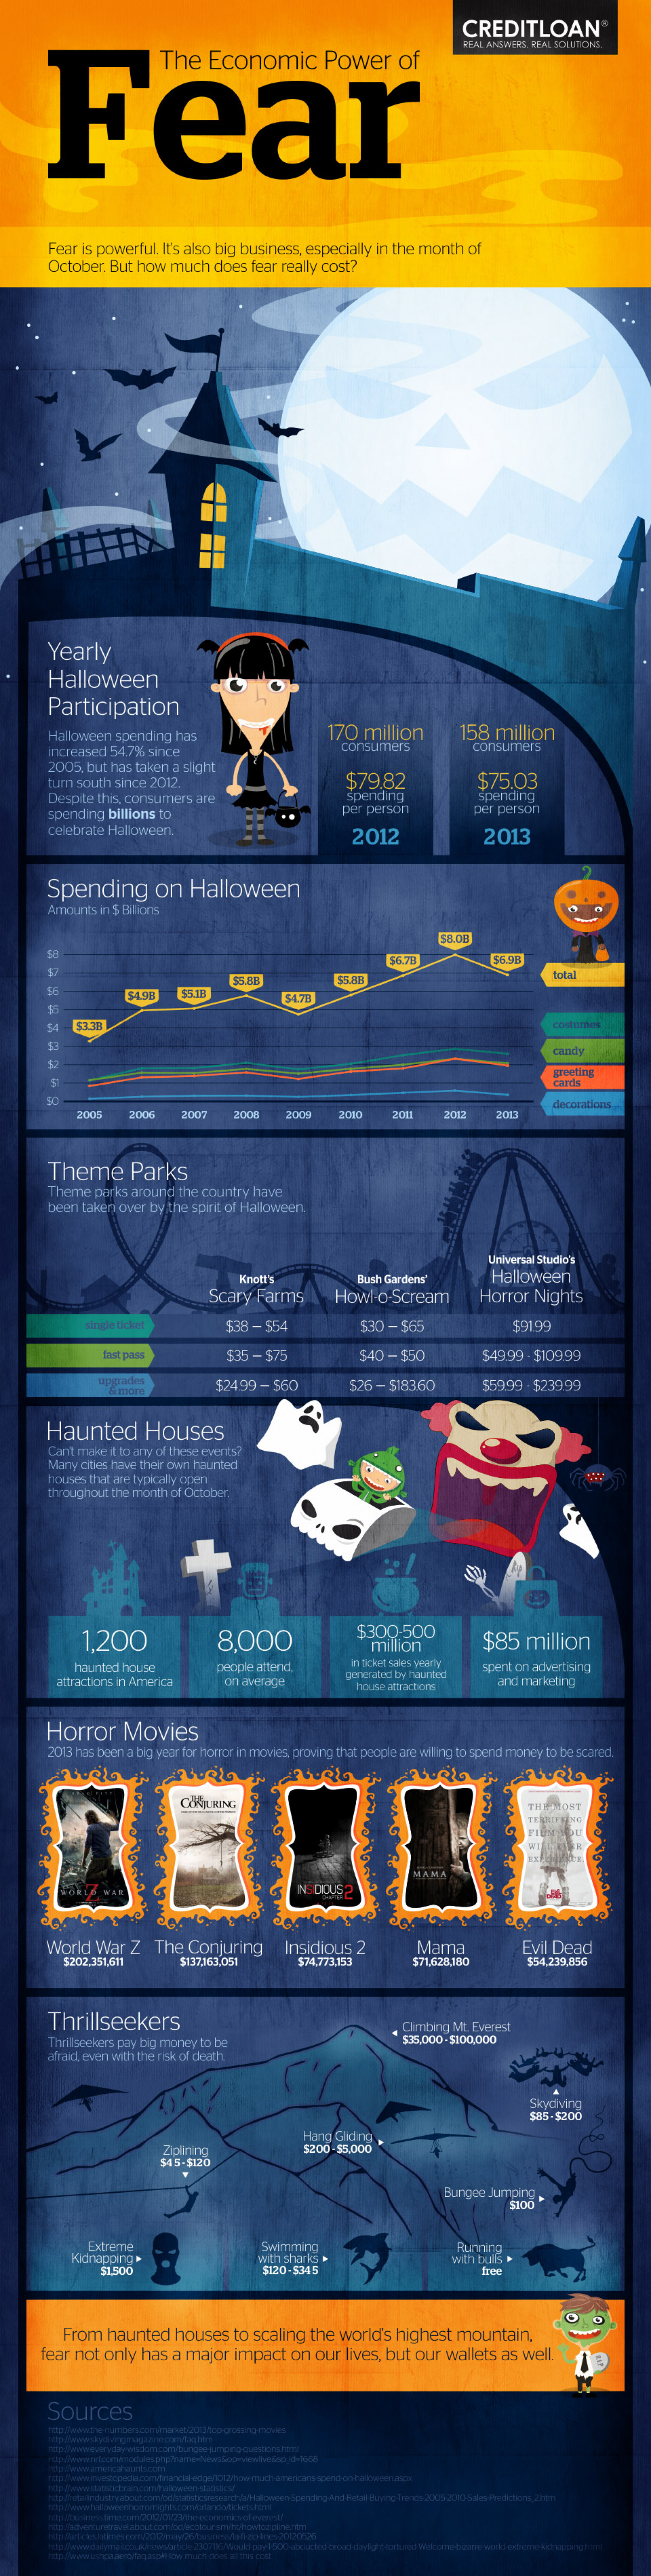 The Economic Power of Fear Infographic